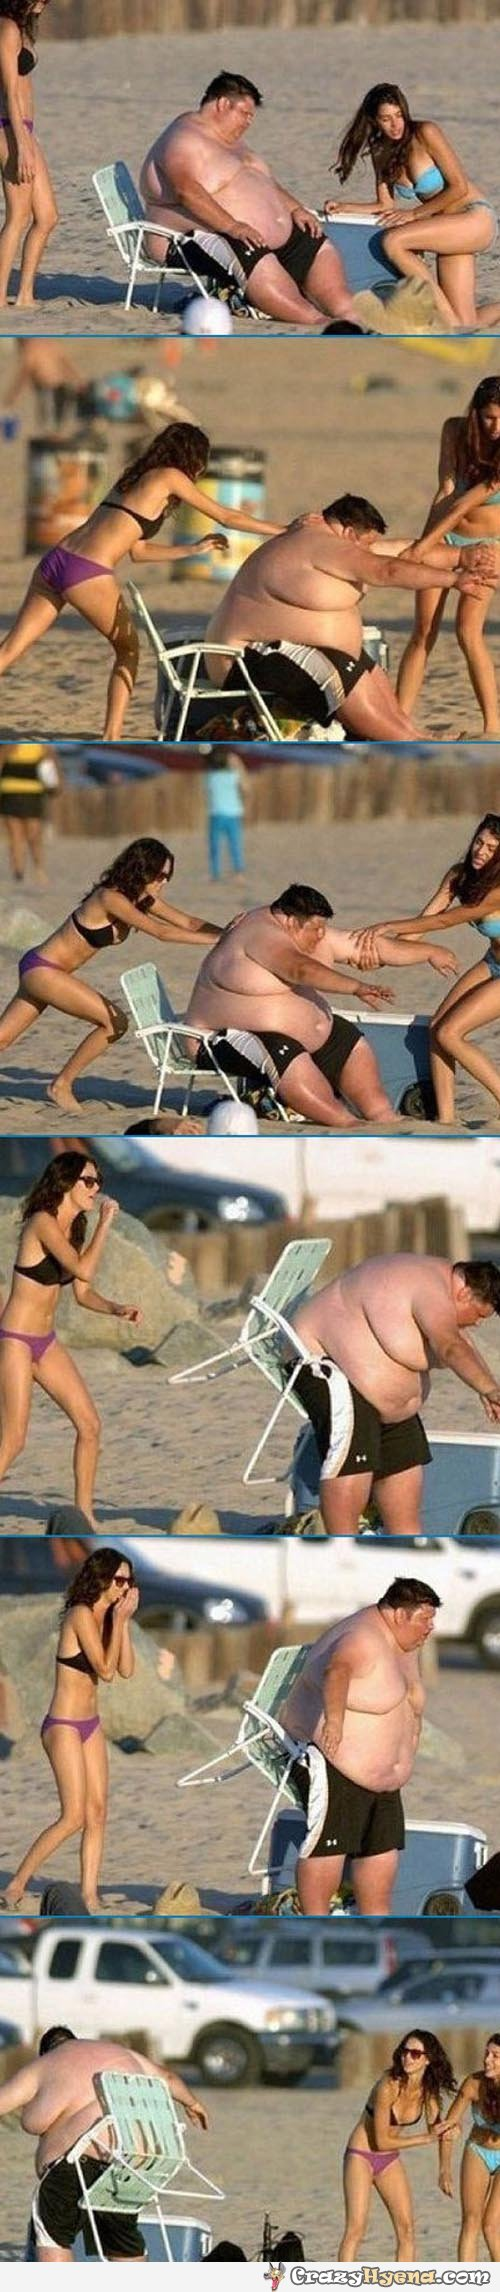 fat-guy-stuck-in-a-chair-pic